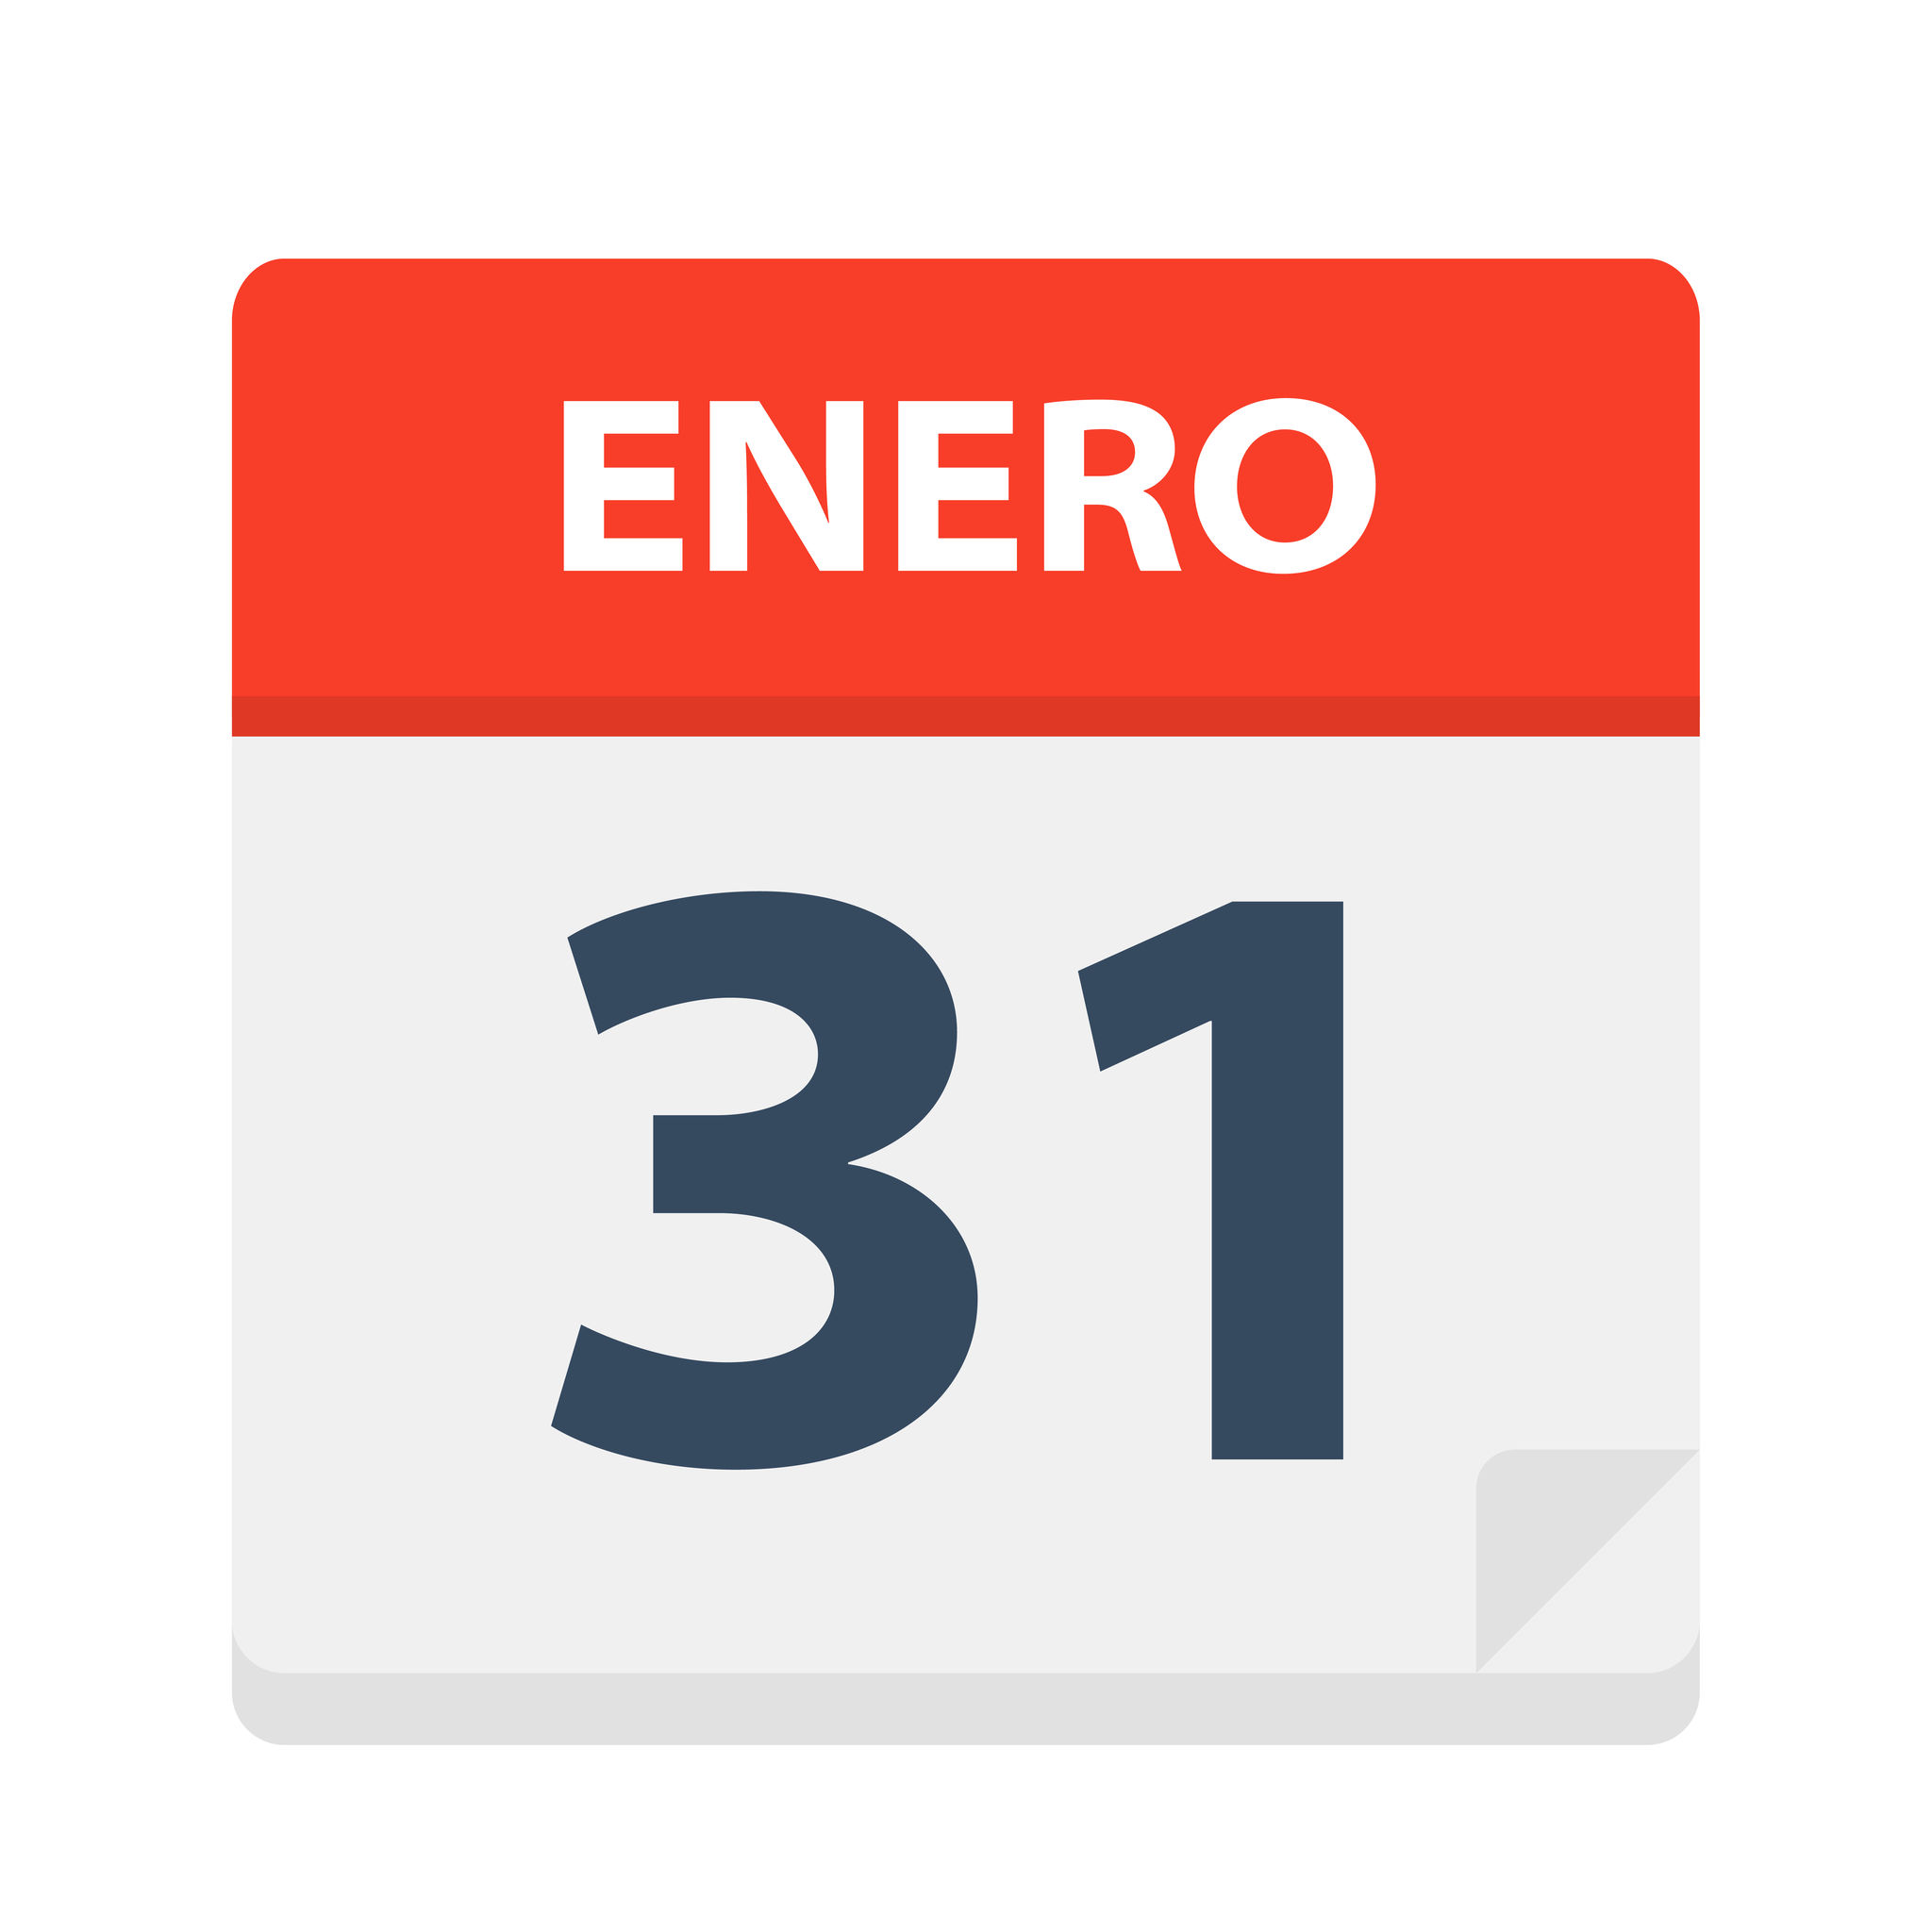 Enero 31 – Calendar Icon – January 31. Vector illustration of Spanish Calendar Leaf